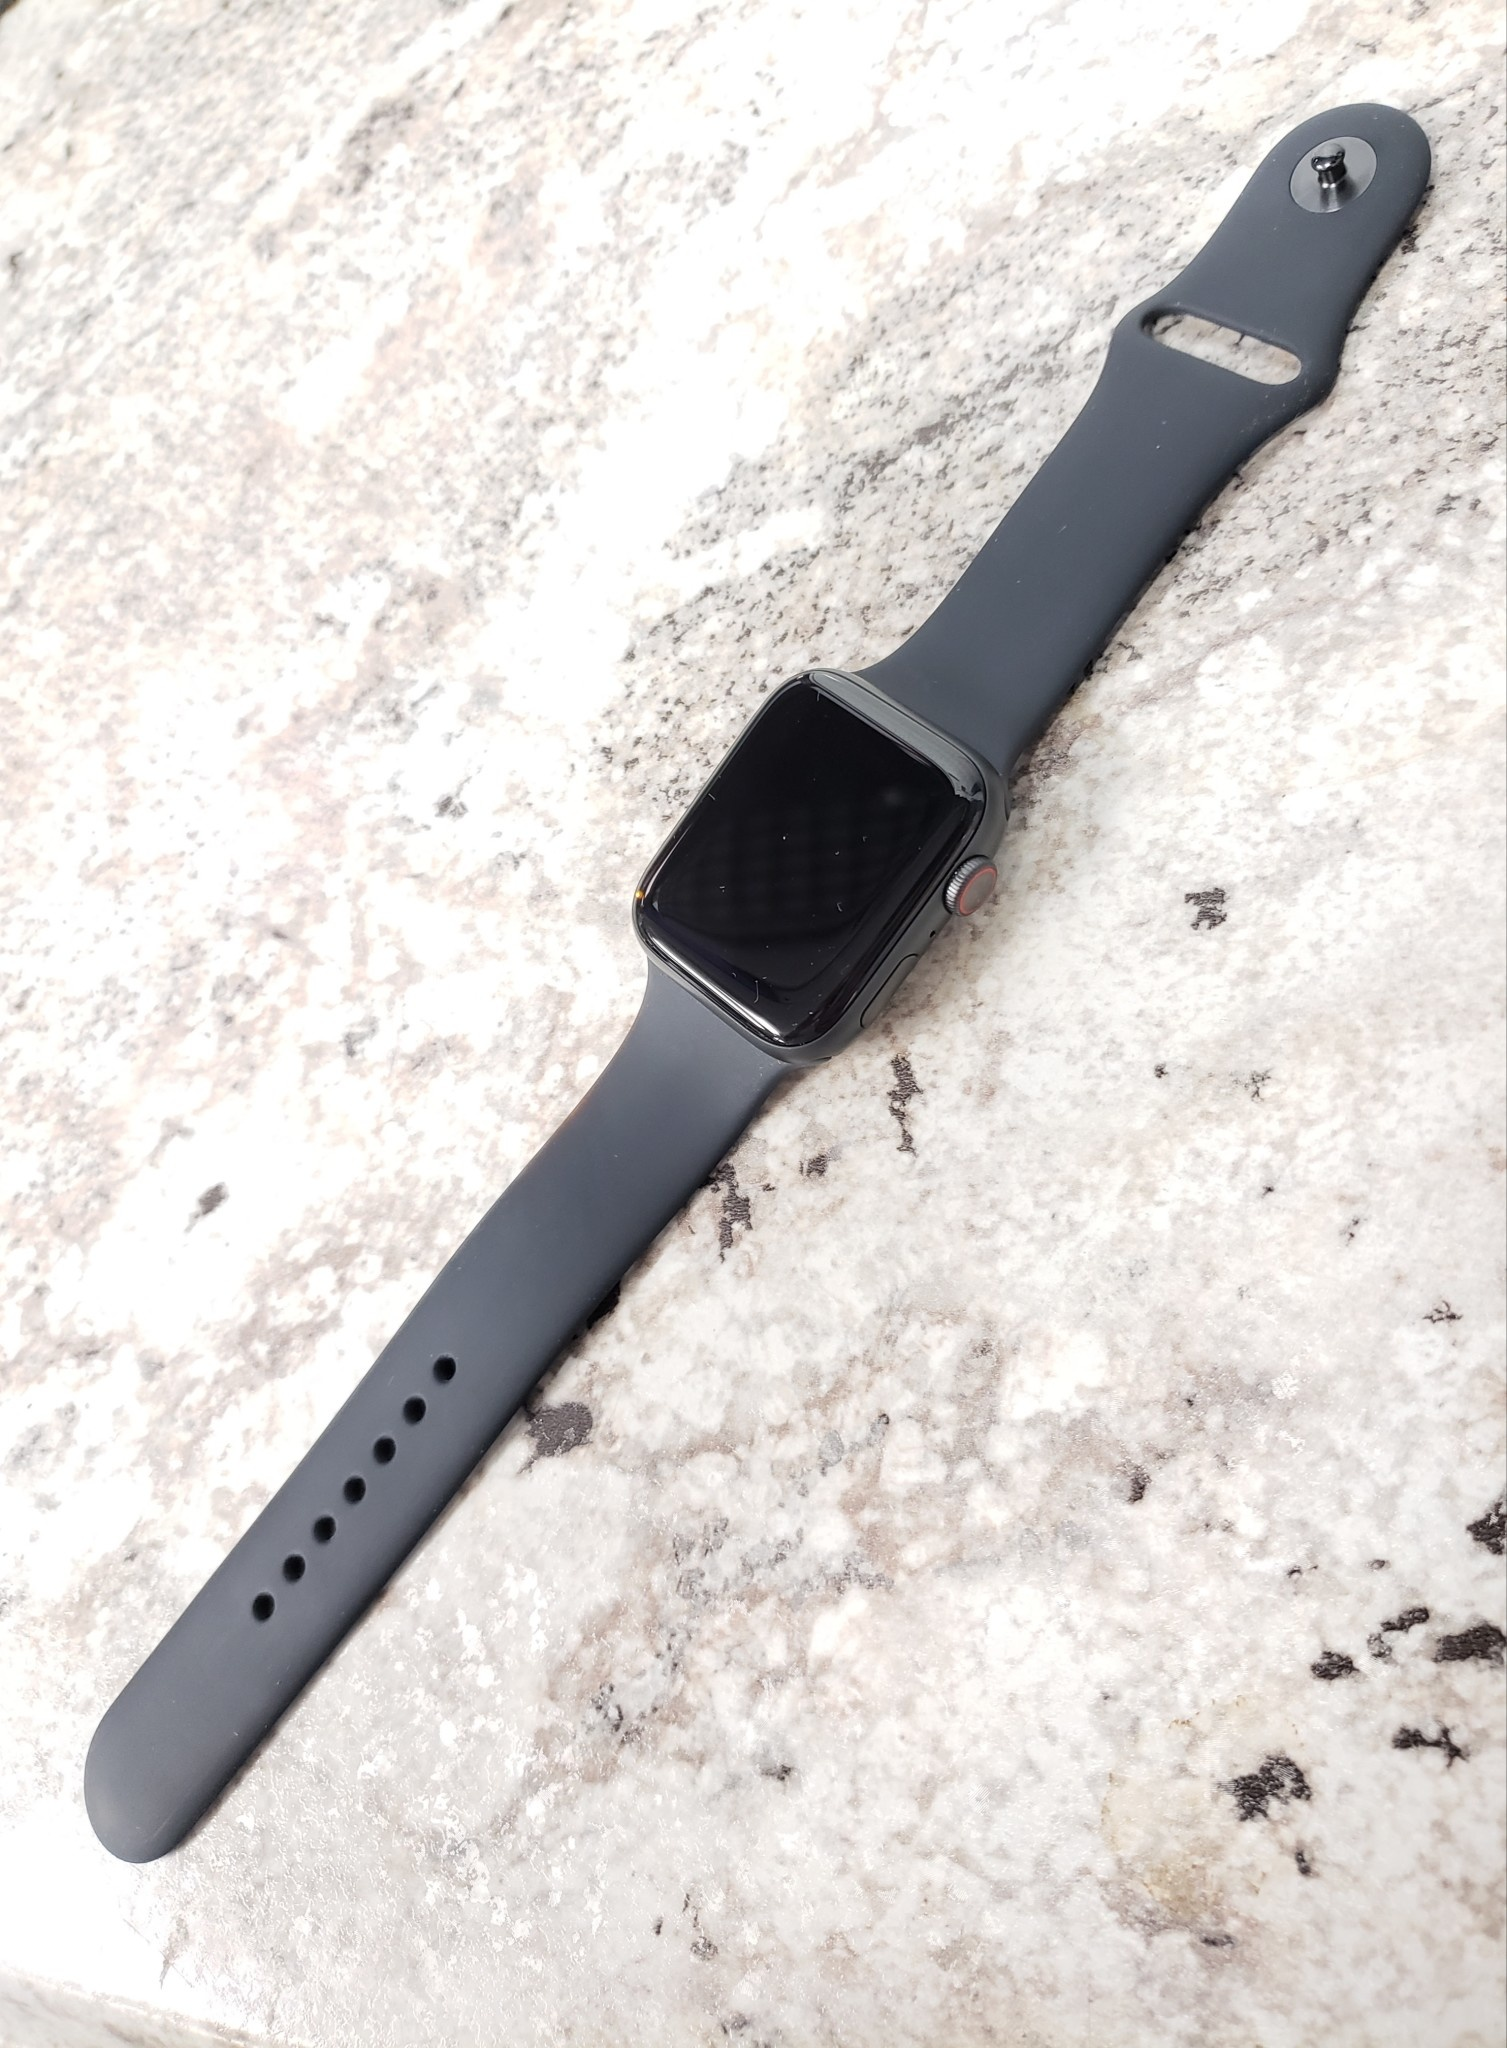 4G Cellular - Apple Watch Series 5 - 44mm - Space Gray - Fair Condition